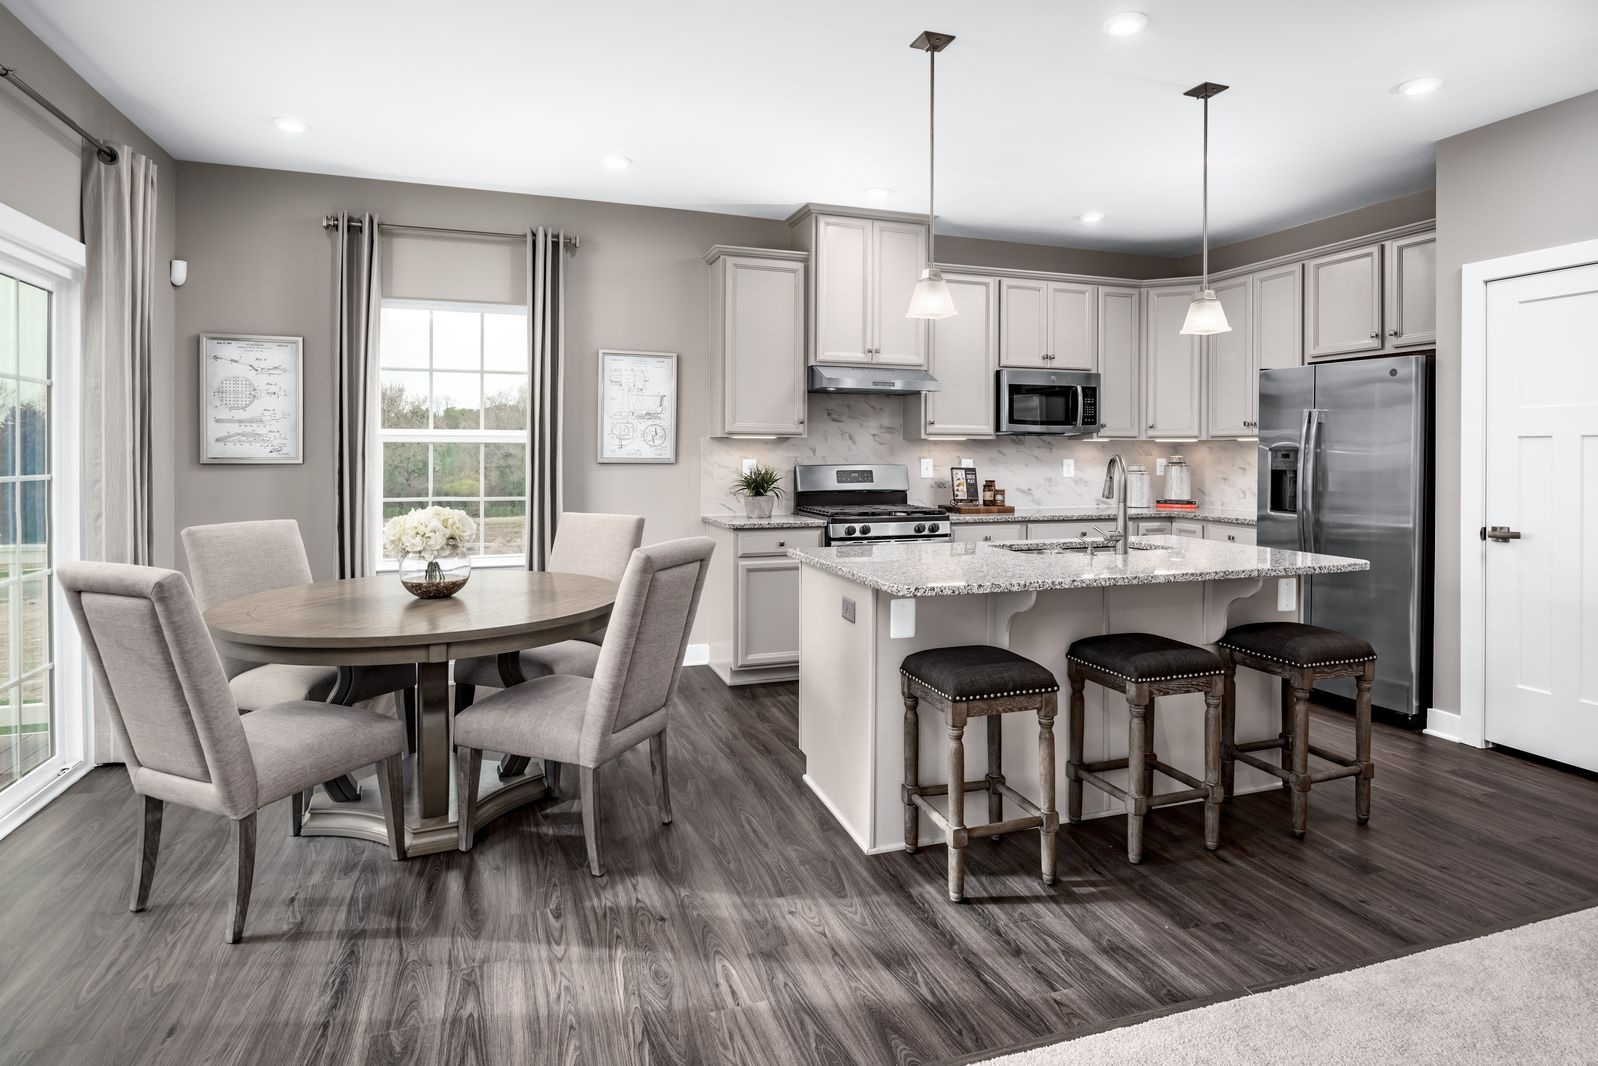 Kitchen featured in the Alberti By Ryan Homes in Warren County, NJ